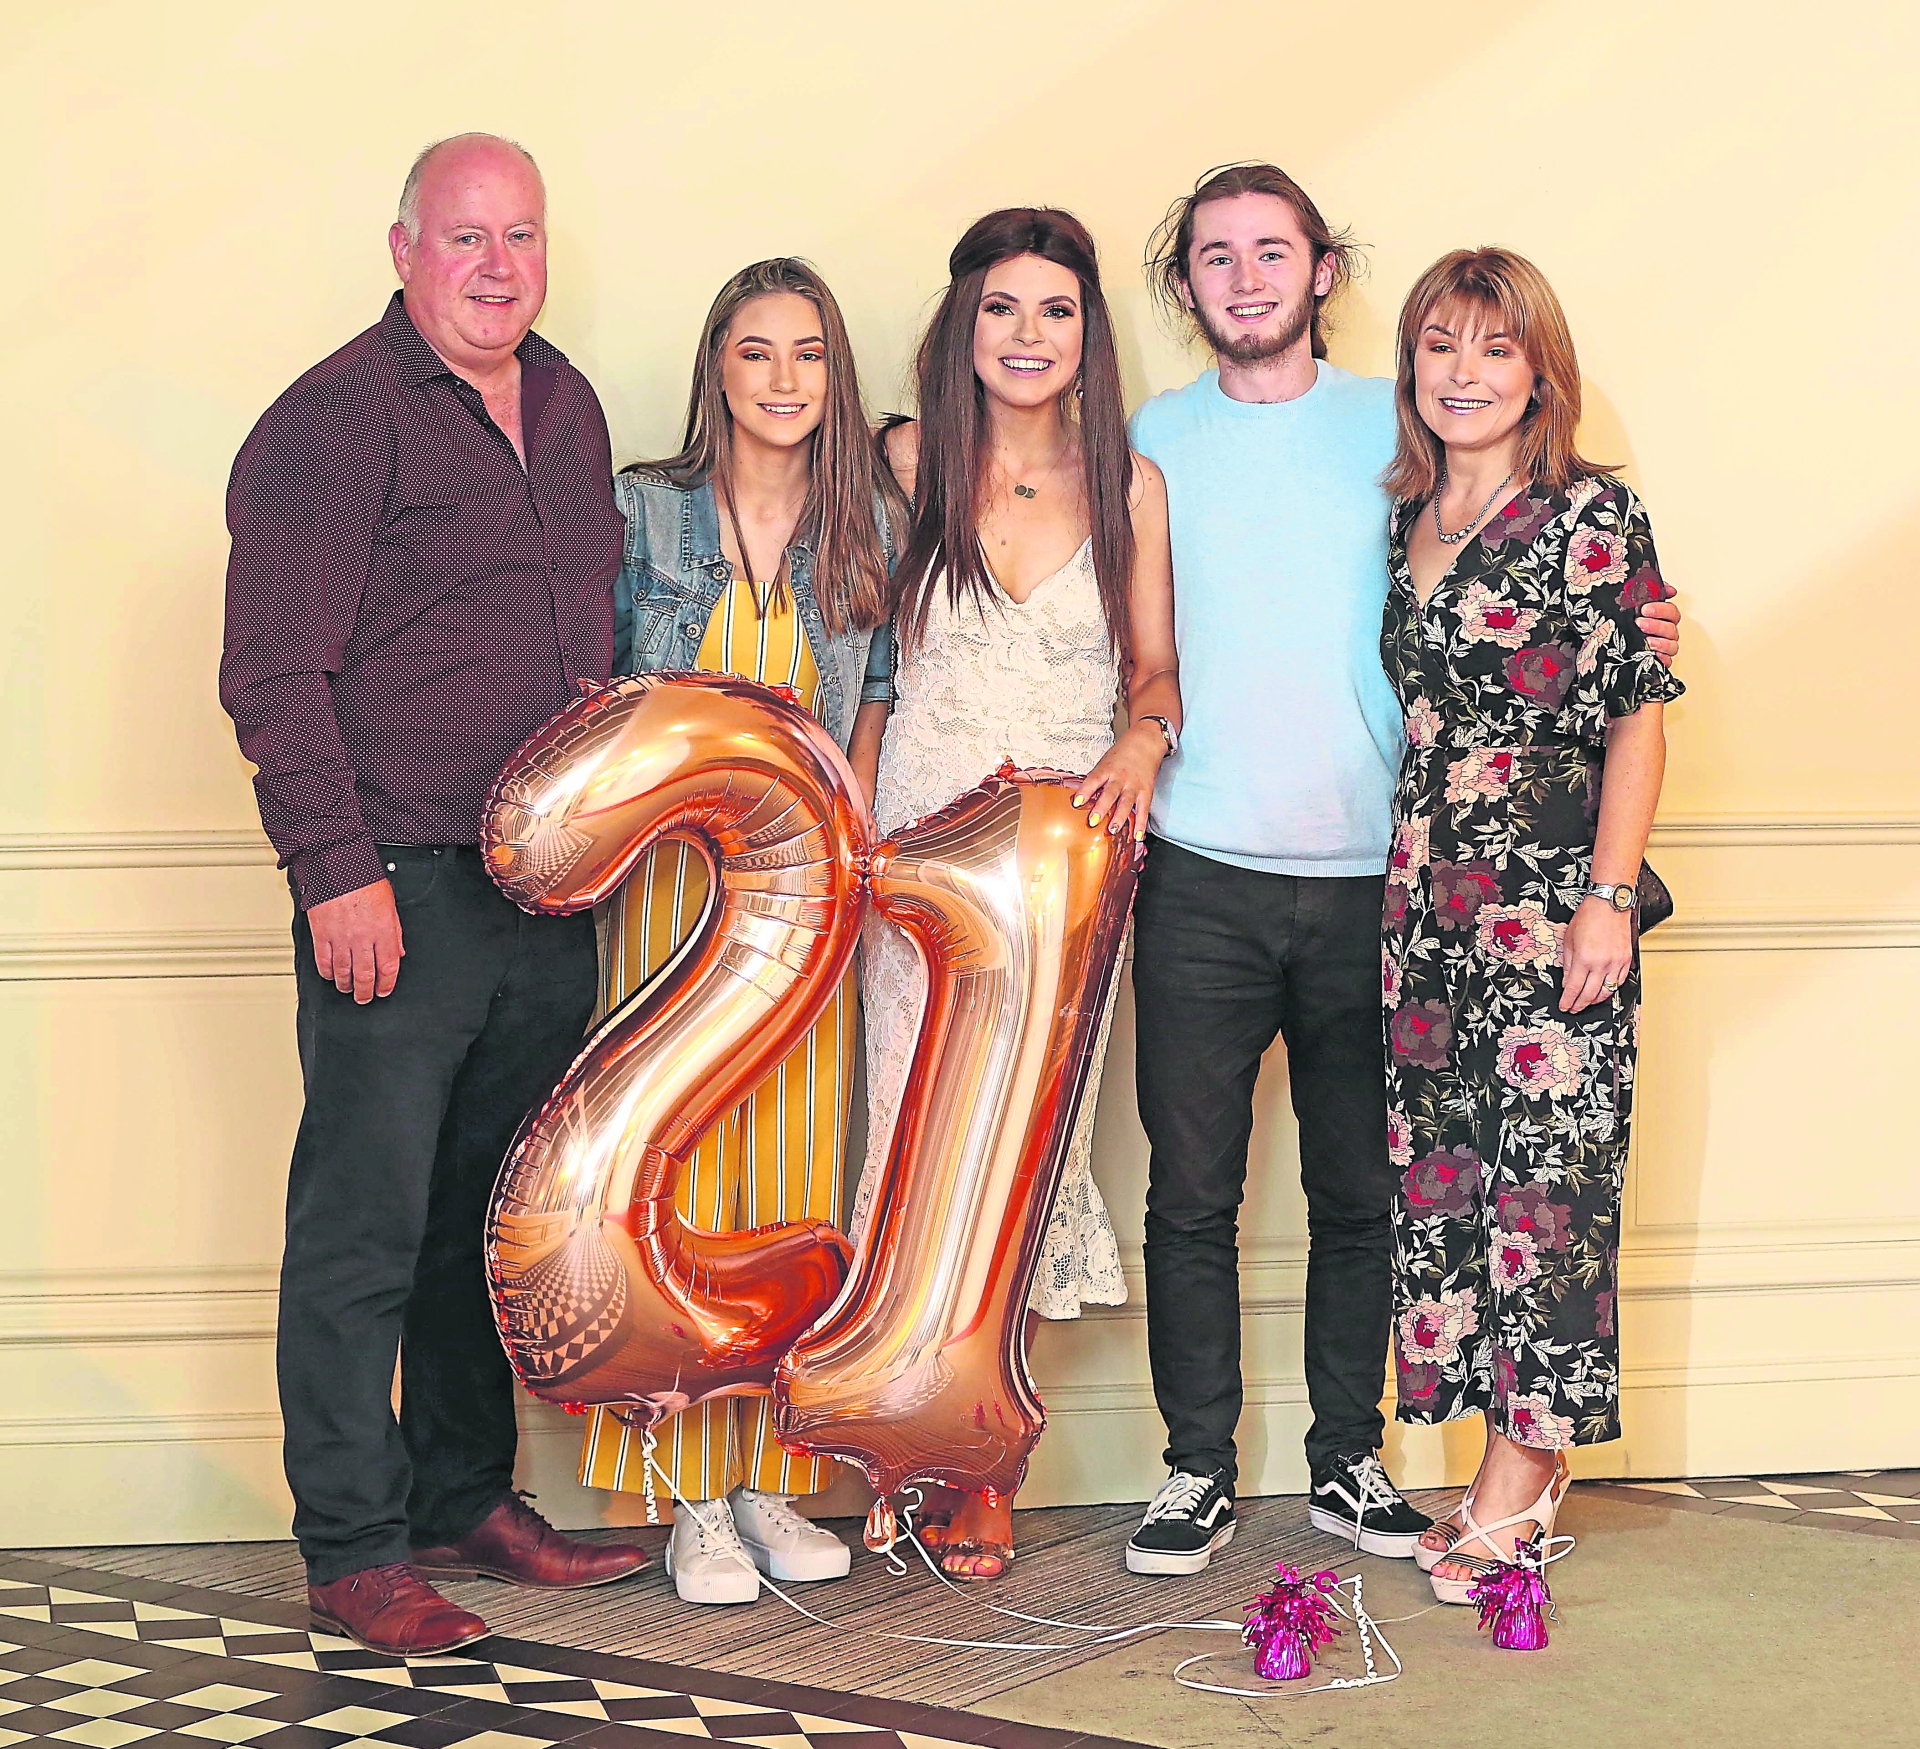 Clodagh Gray and her family at Clodagh's 21st